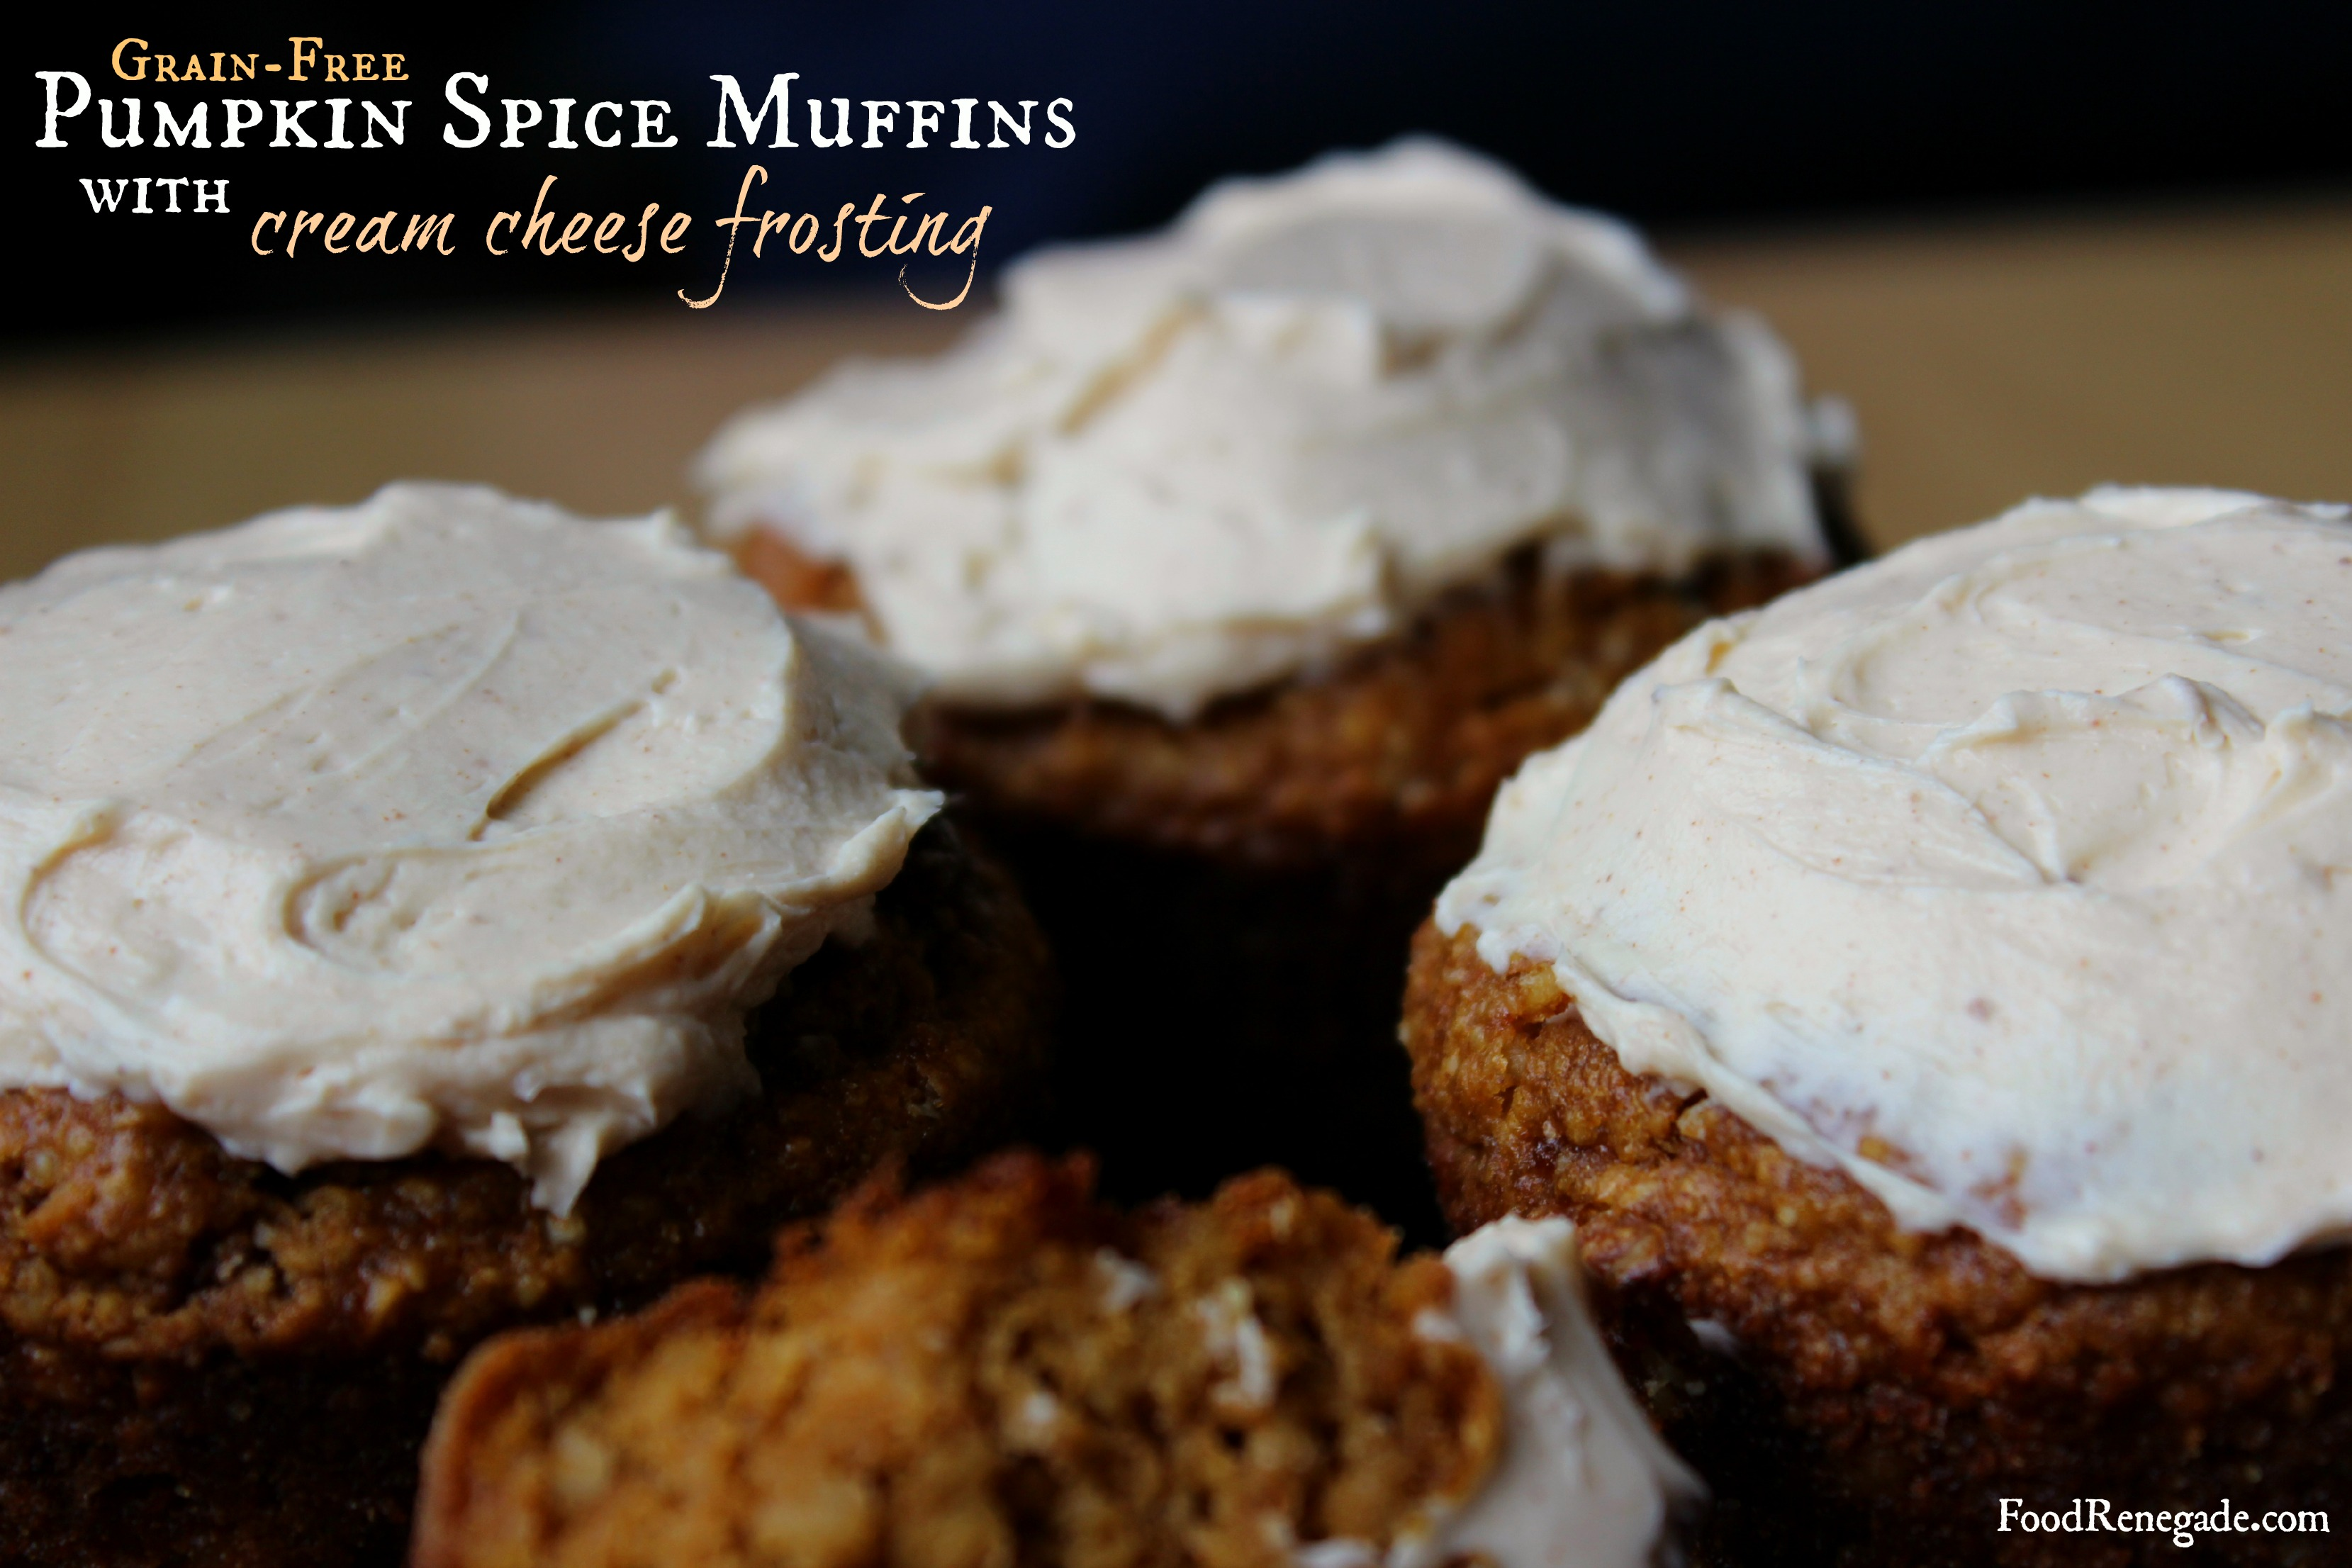 Grain-Free Pumpkin Spice Muffins with Cream Cheese ...